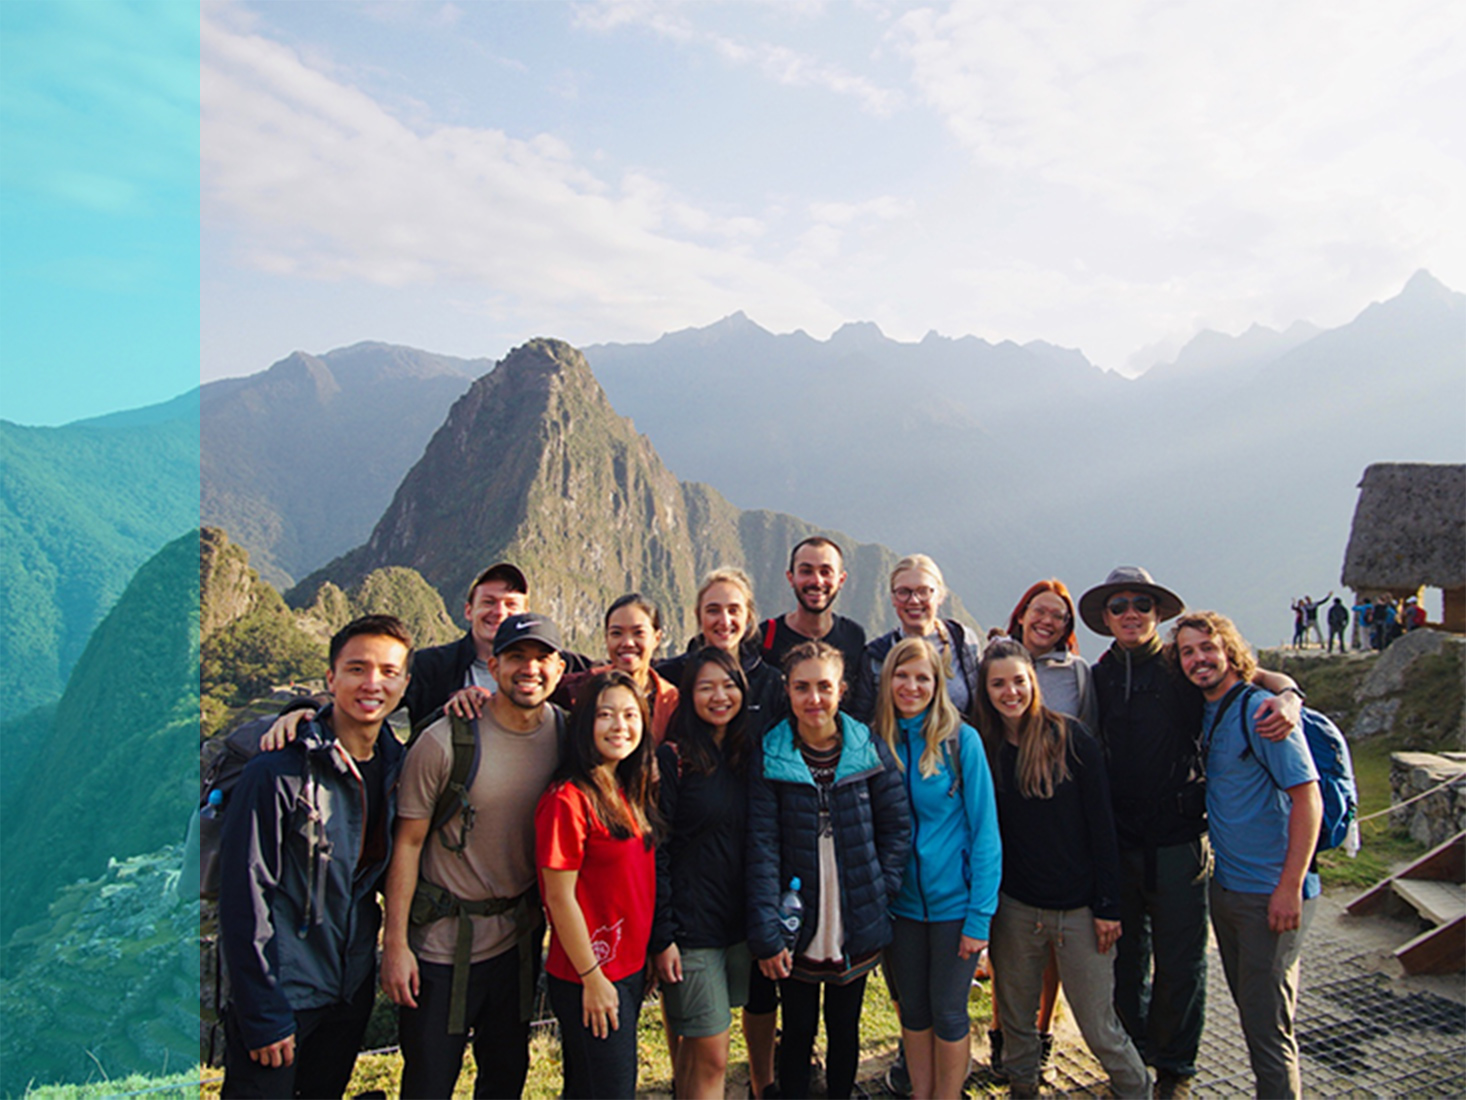 A group of study abroad students pose in front of a mountainous backdrop.